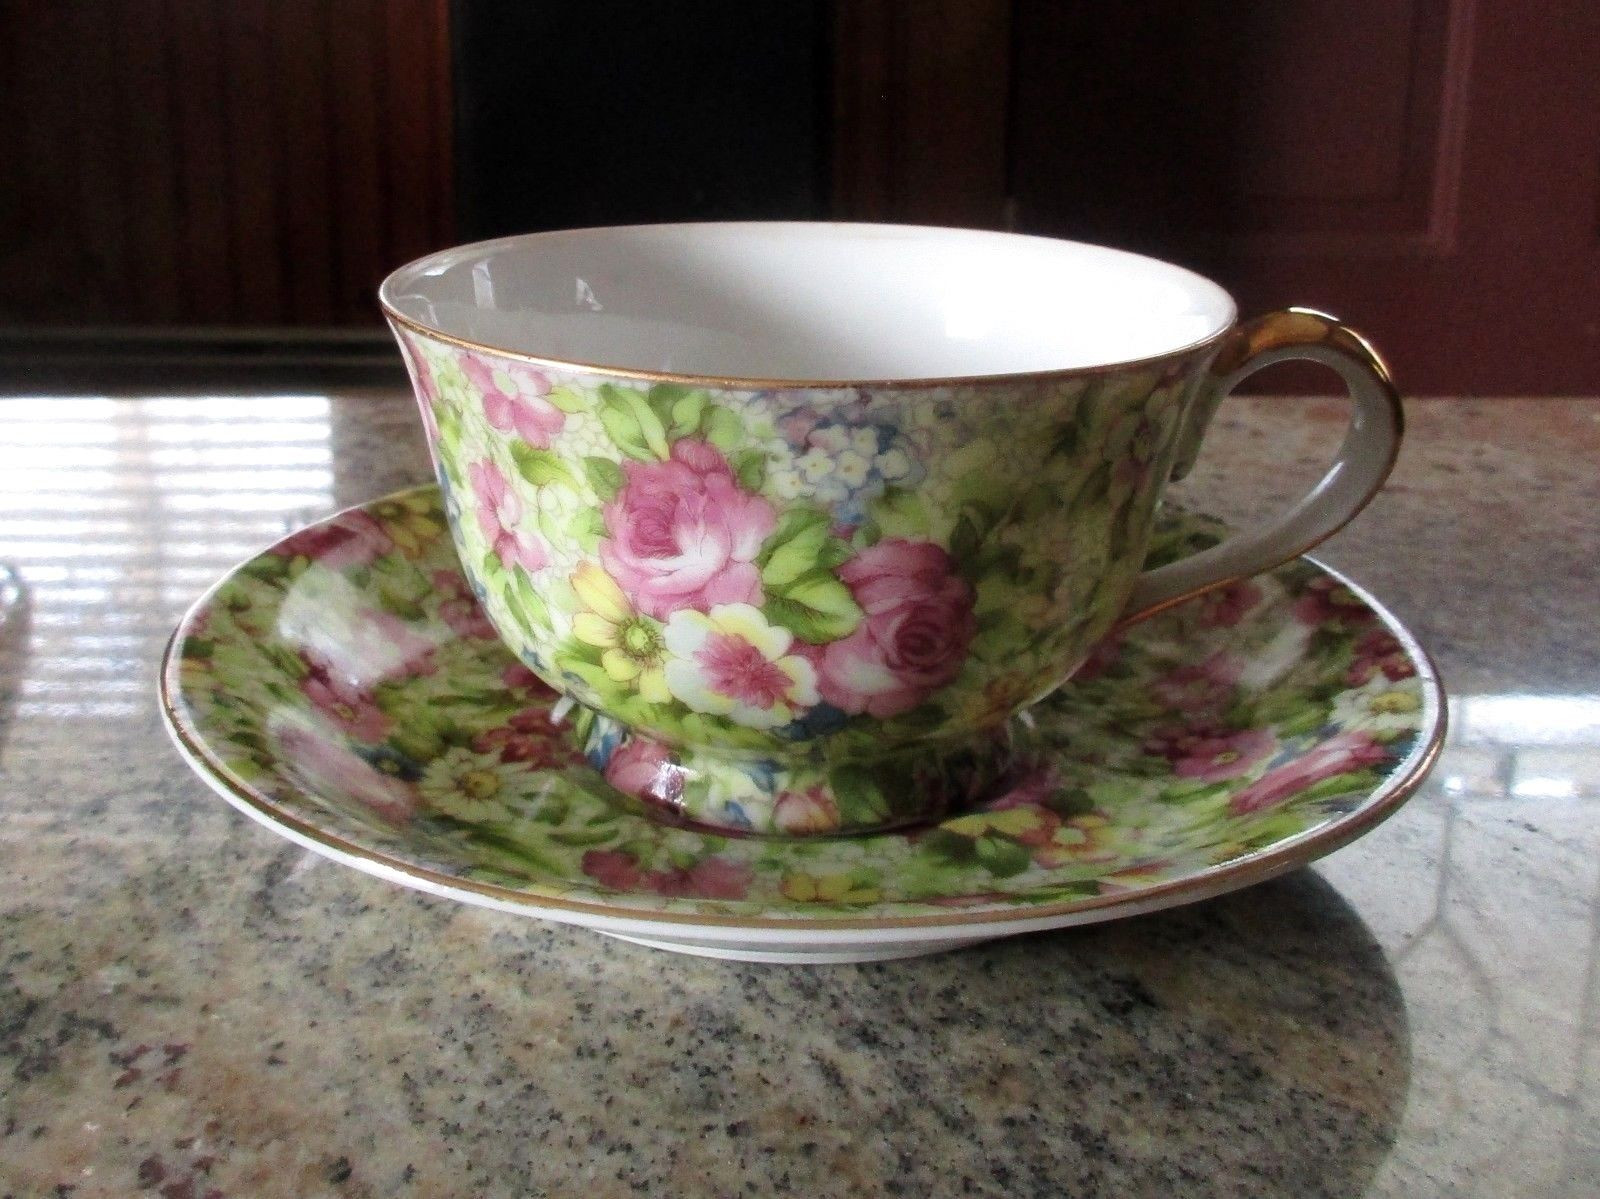 13 Nice Vintage Ucagco Ceramics Japan Vase 2021 free download vintage ucagco ceramics japan vase of occupied japan antique price guide throughout vintage merit occupied japan floral chintz design porcelain footed cup saucer